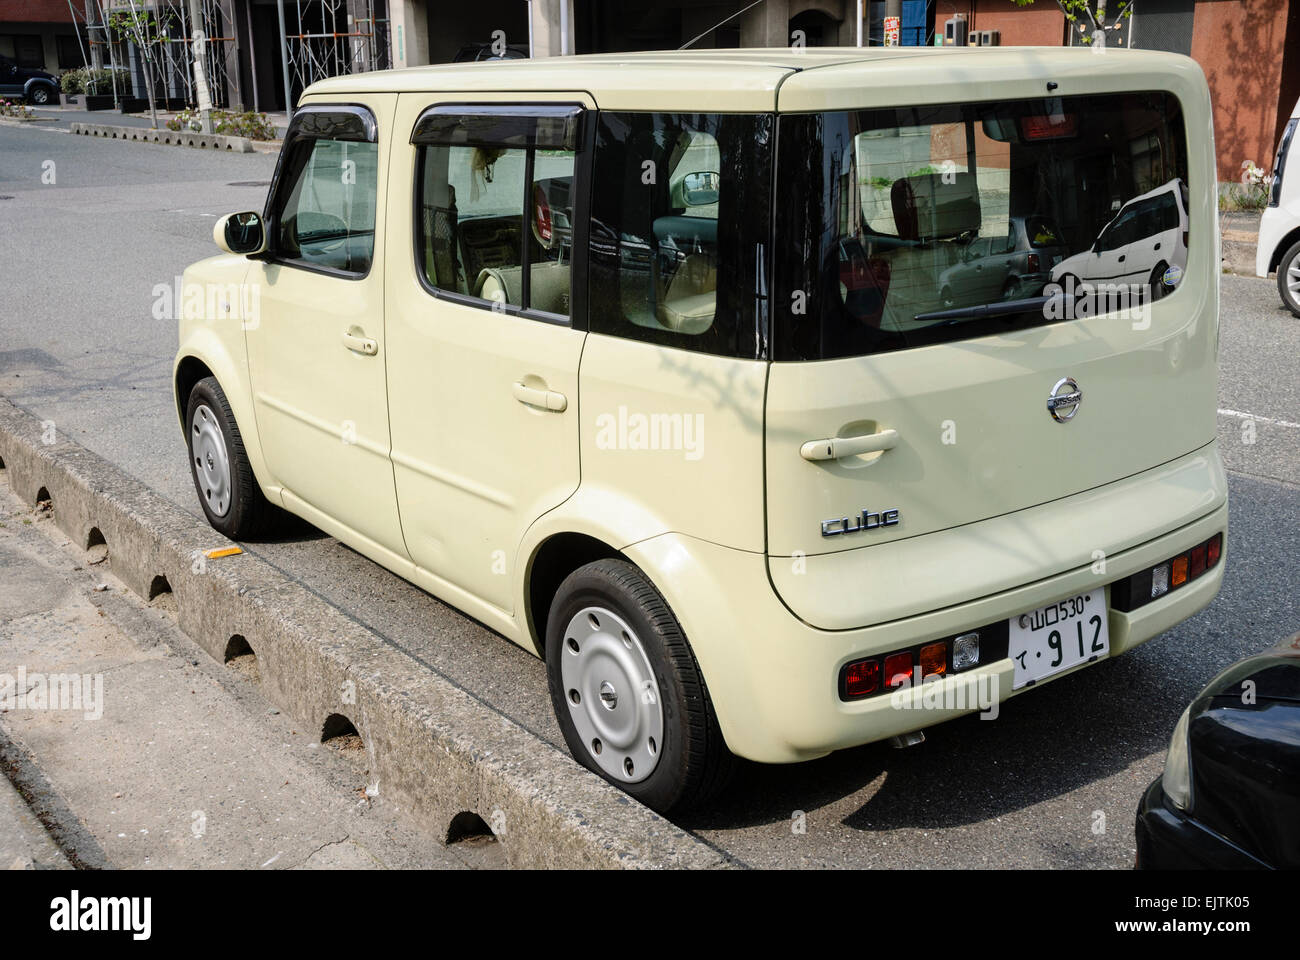 Asian Car Parked